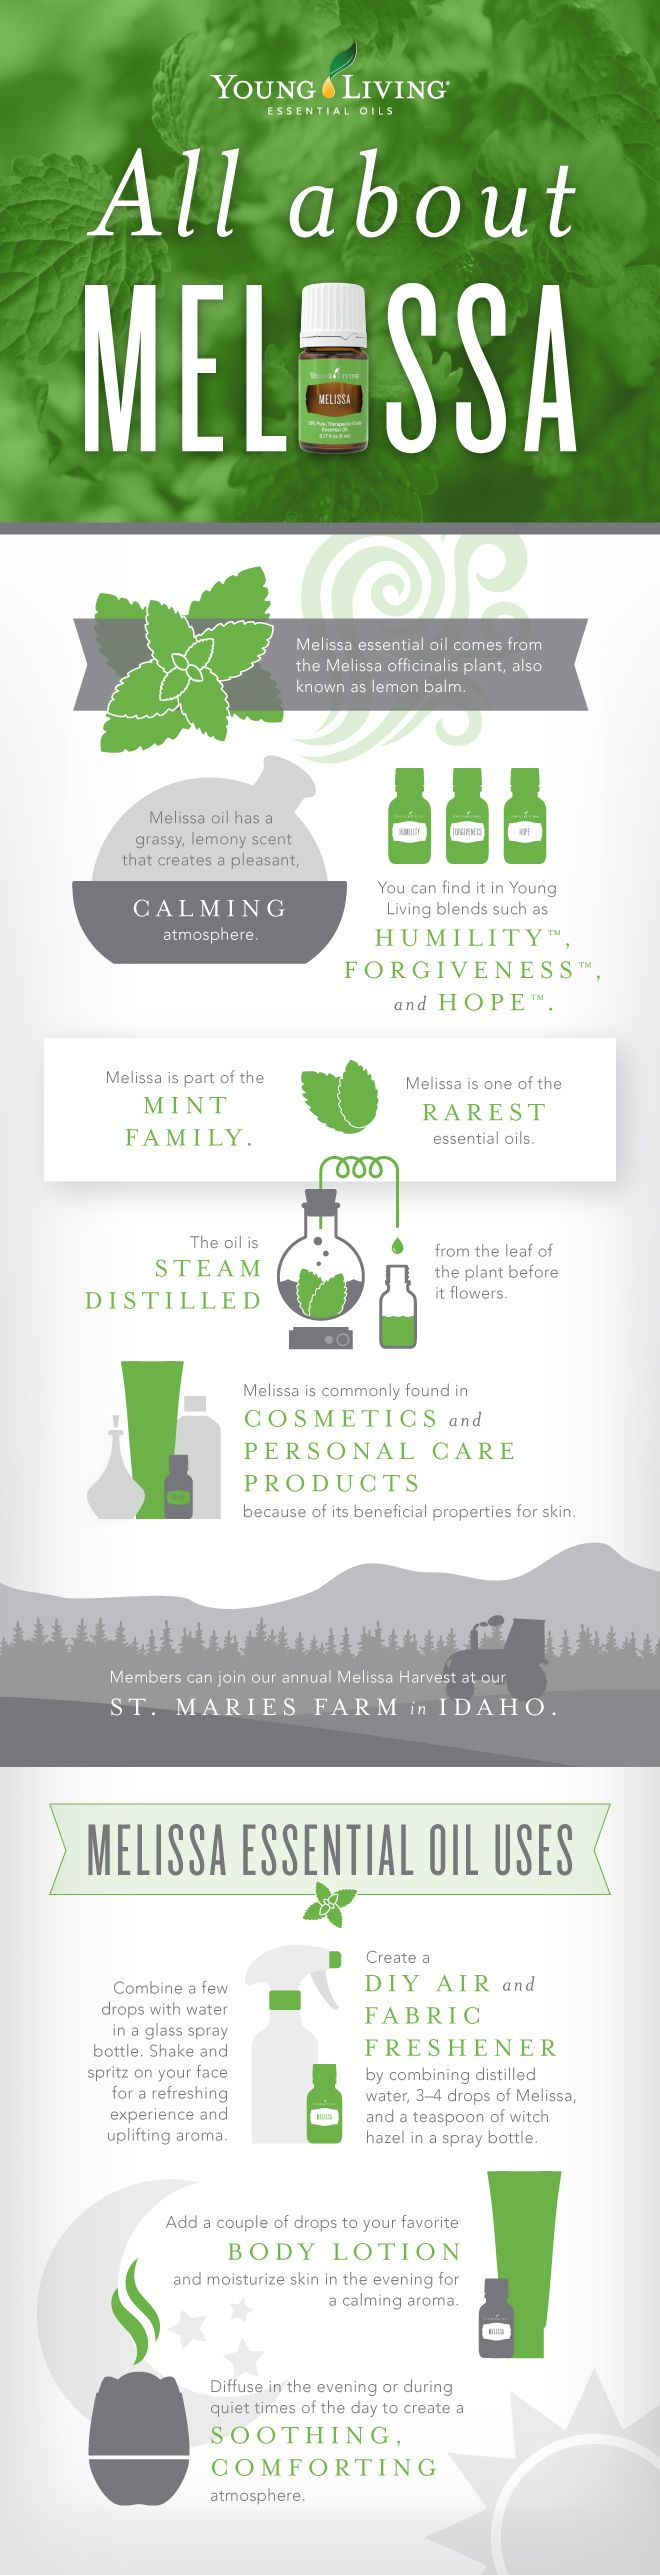 All About Melissa Essential Oil Infographic | WWW.THESAVVYOILER.COM